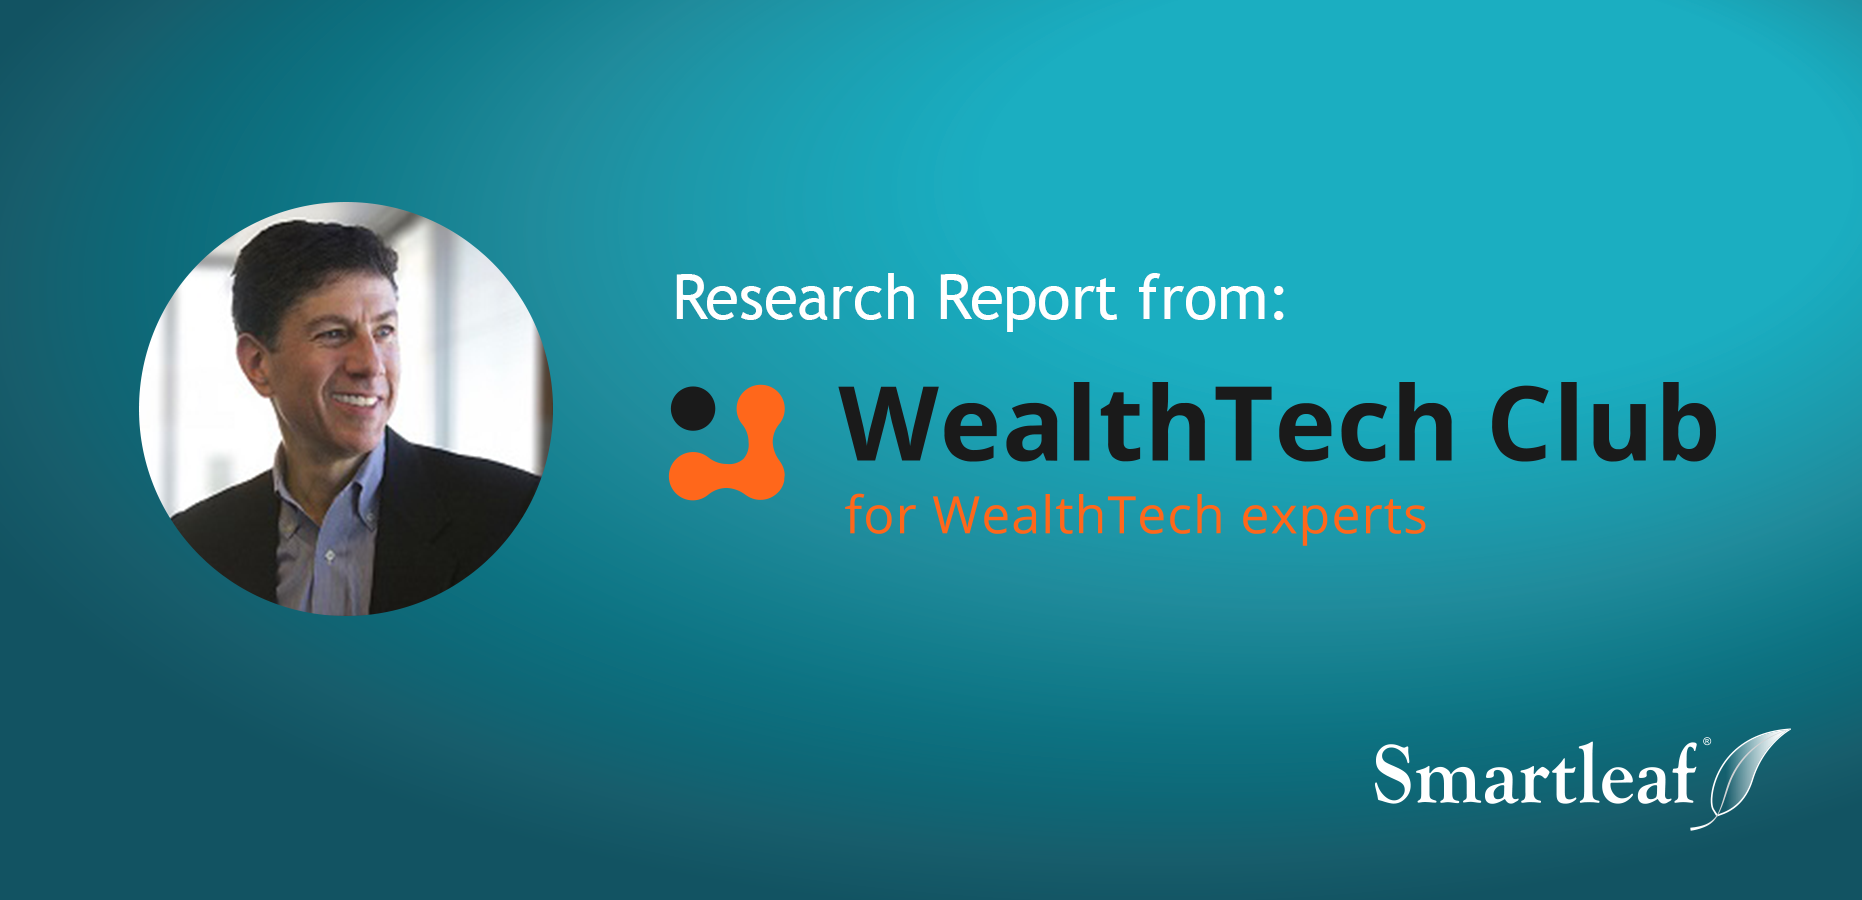 WealthTech Club Header Photo